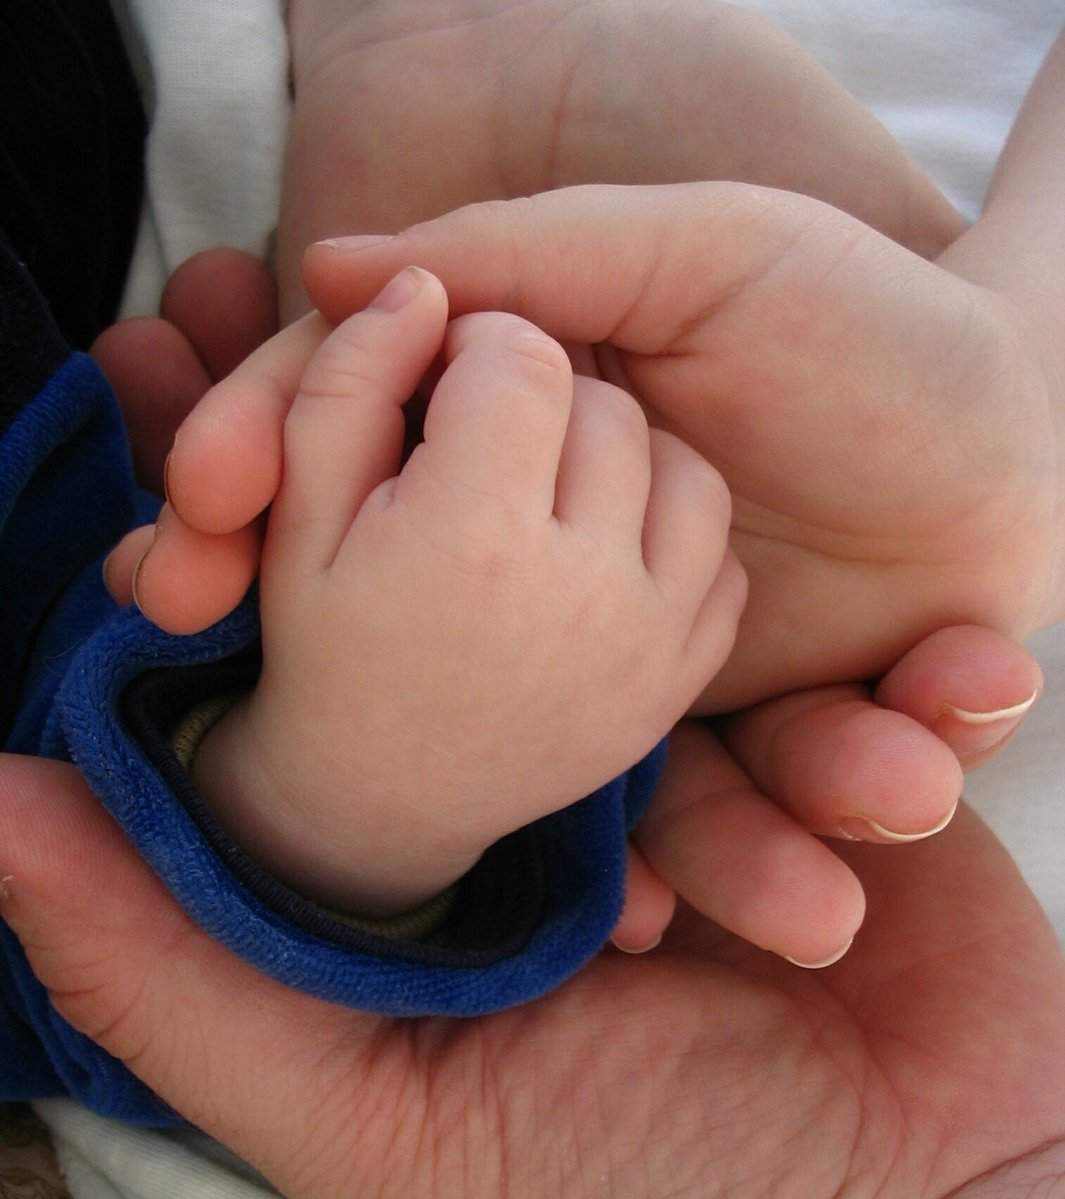 family,hands,parents,children